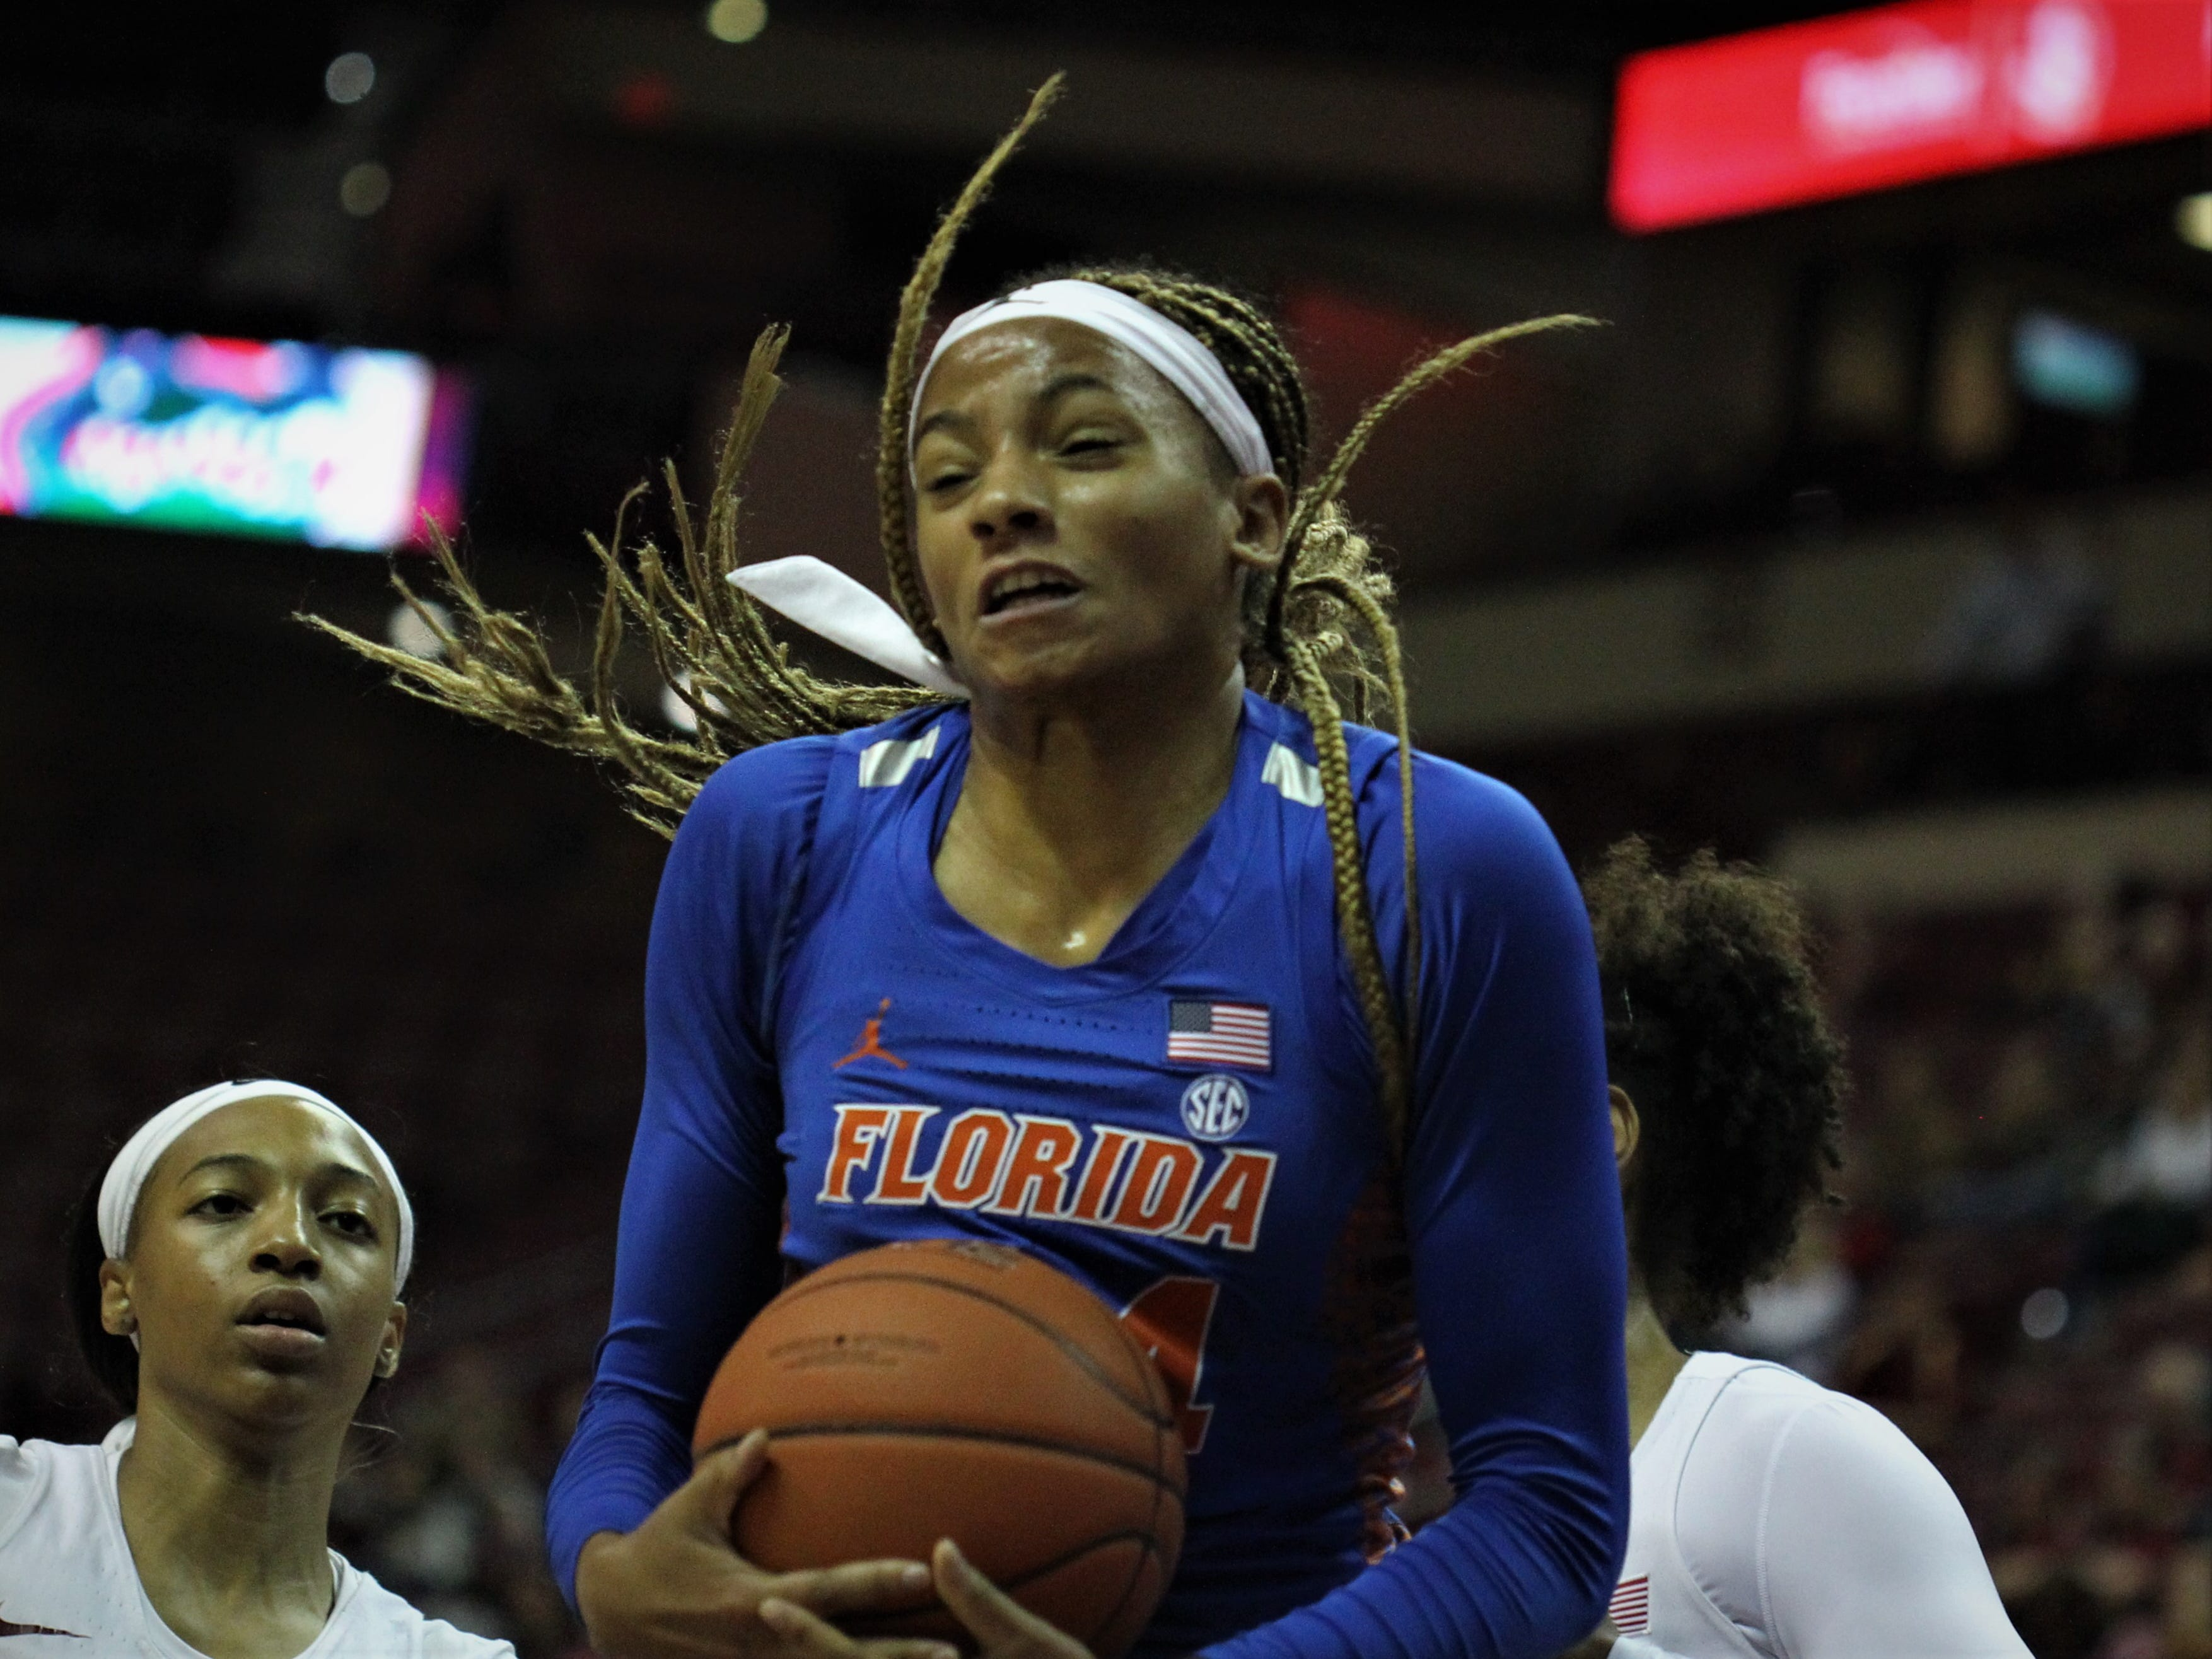 Florida's Paige Robinson grabs a rebound during the first half of a game against Florida State at the Tucker Civic Center on Nov. 11, 2018.